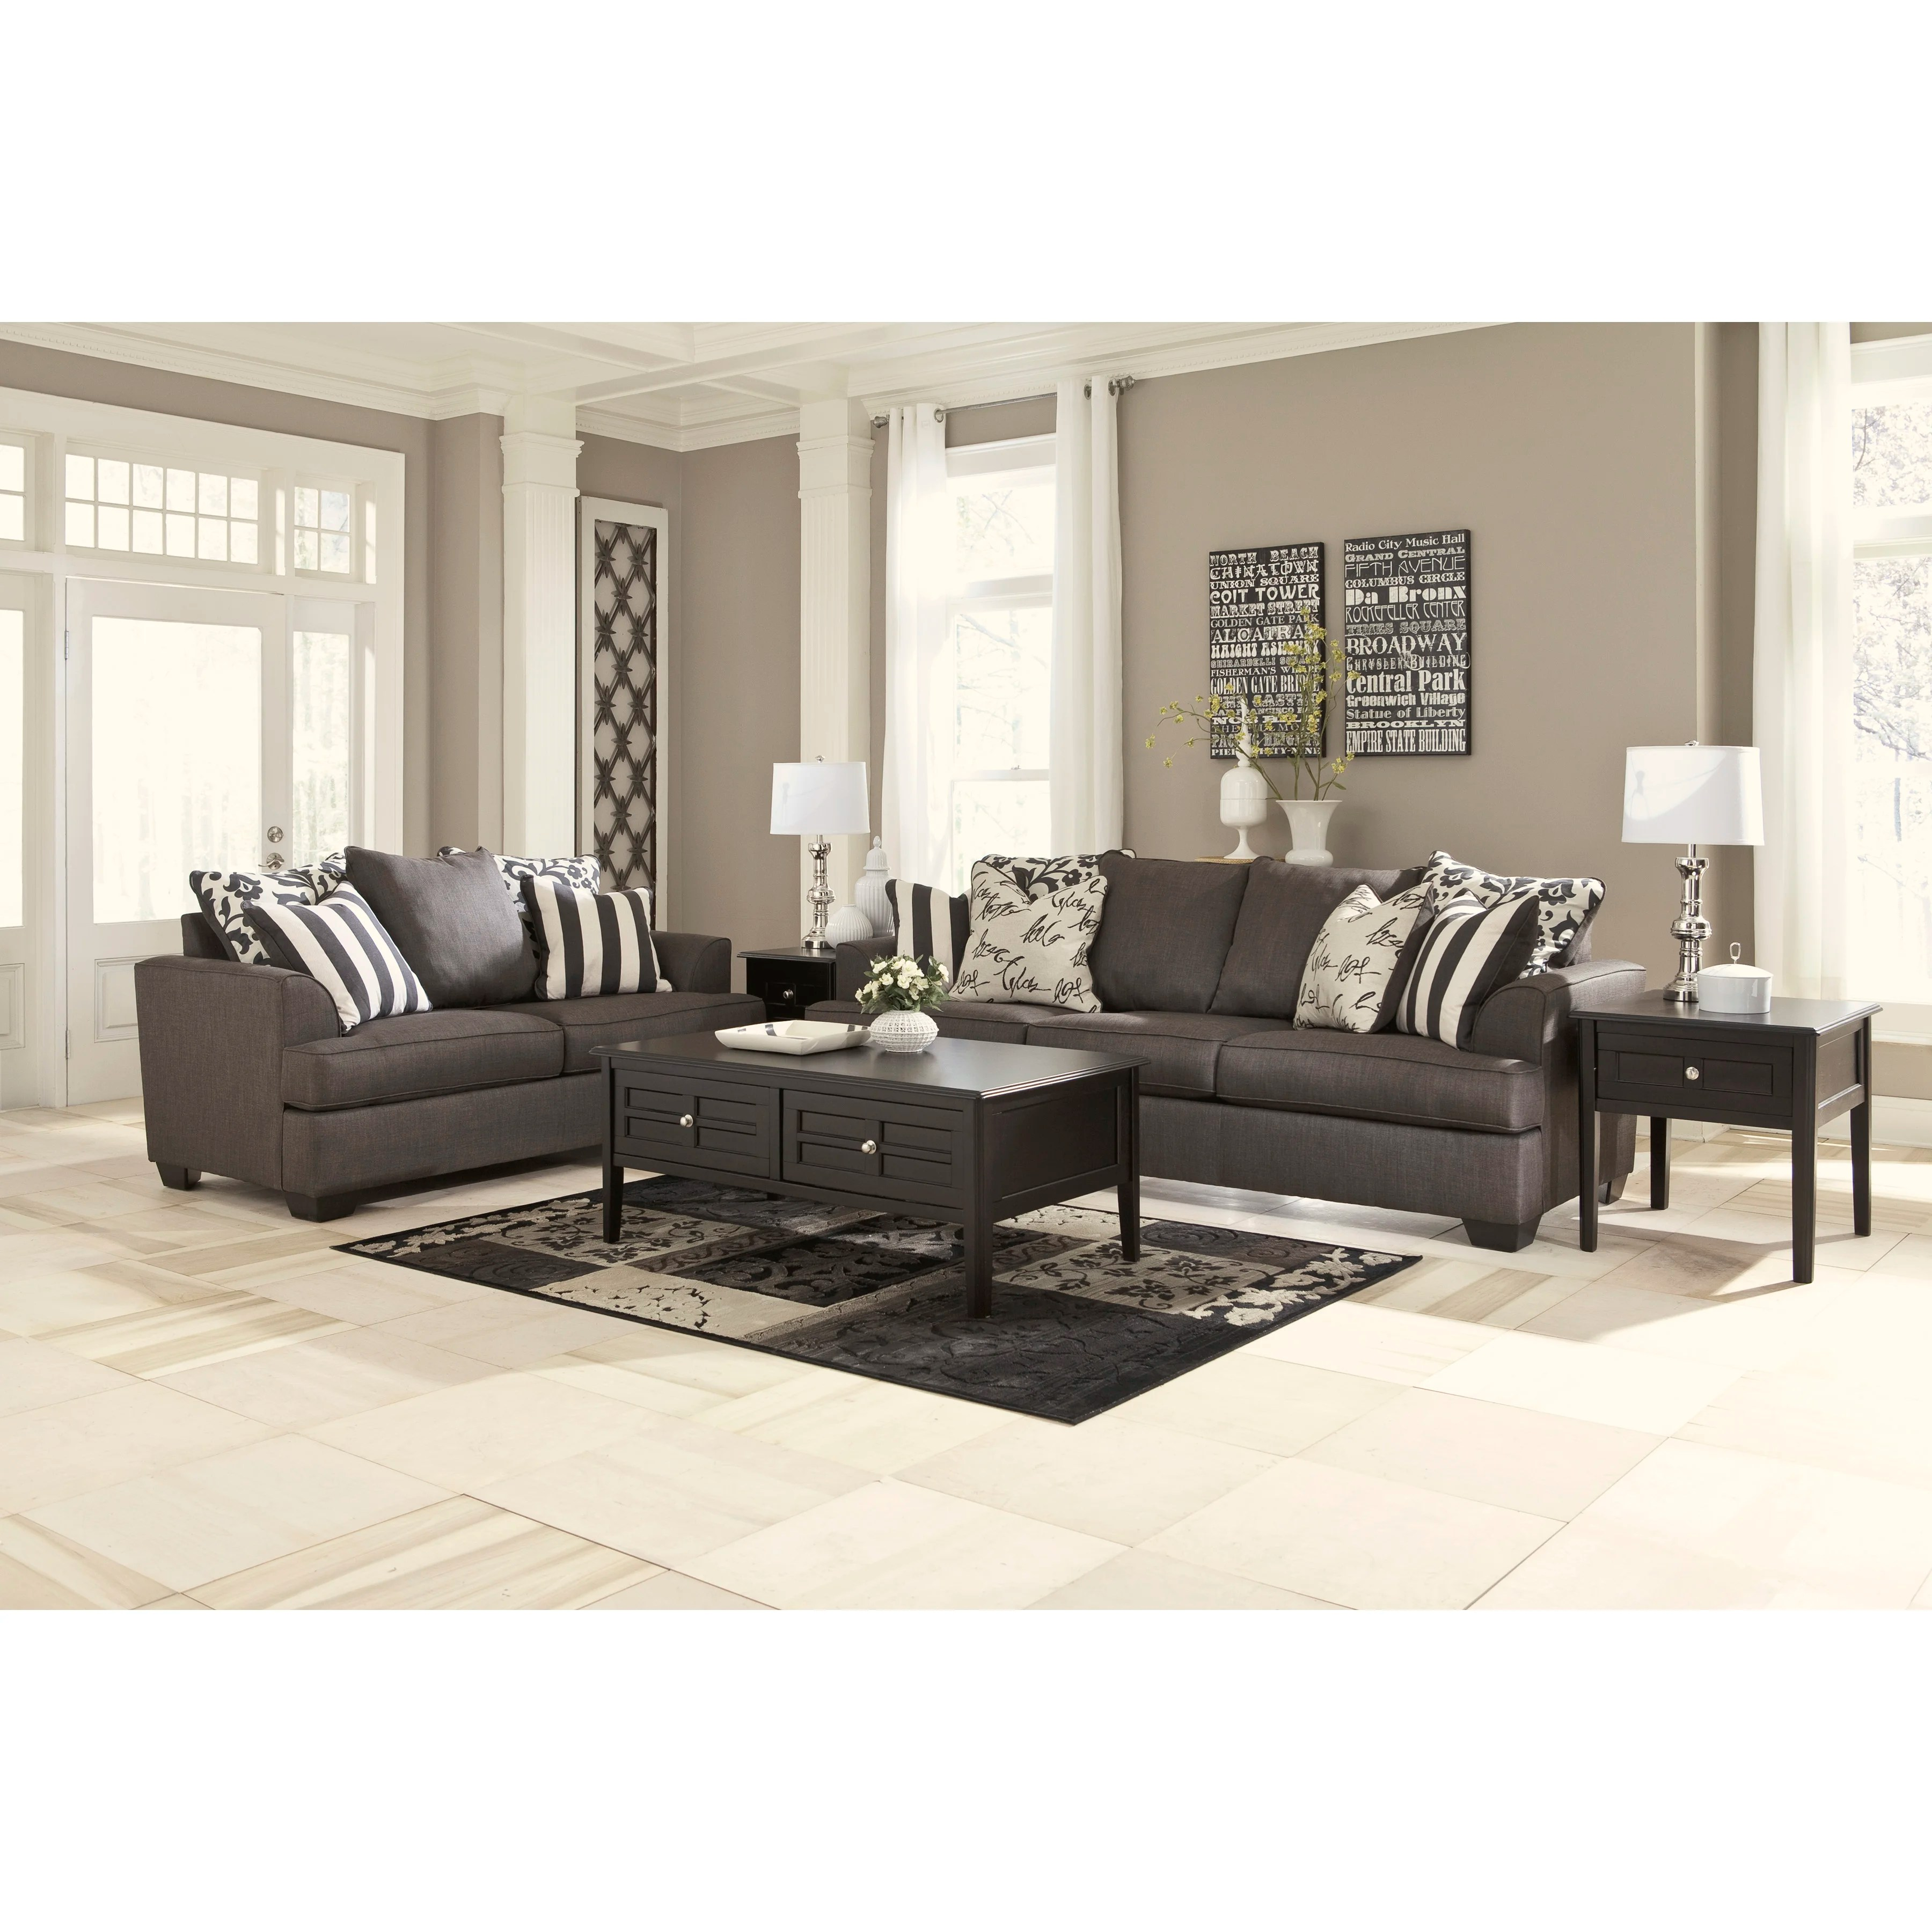 signature design by ashley harvest sleeper sofa interchangeable sectional bed with storage hobson wayfair